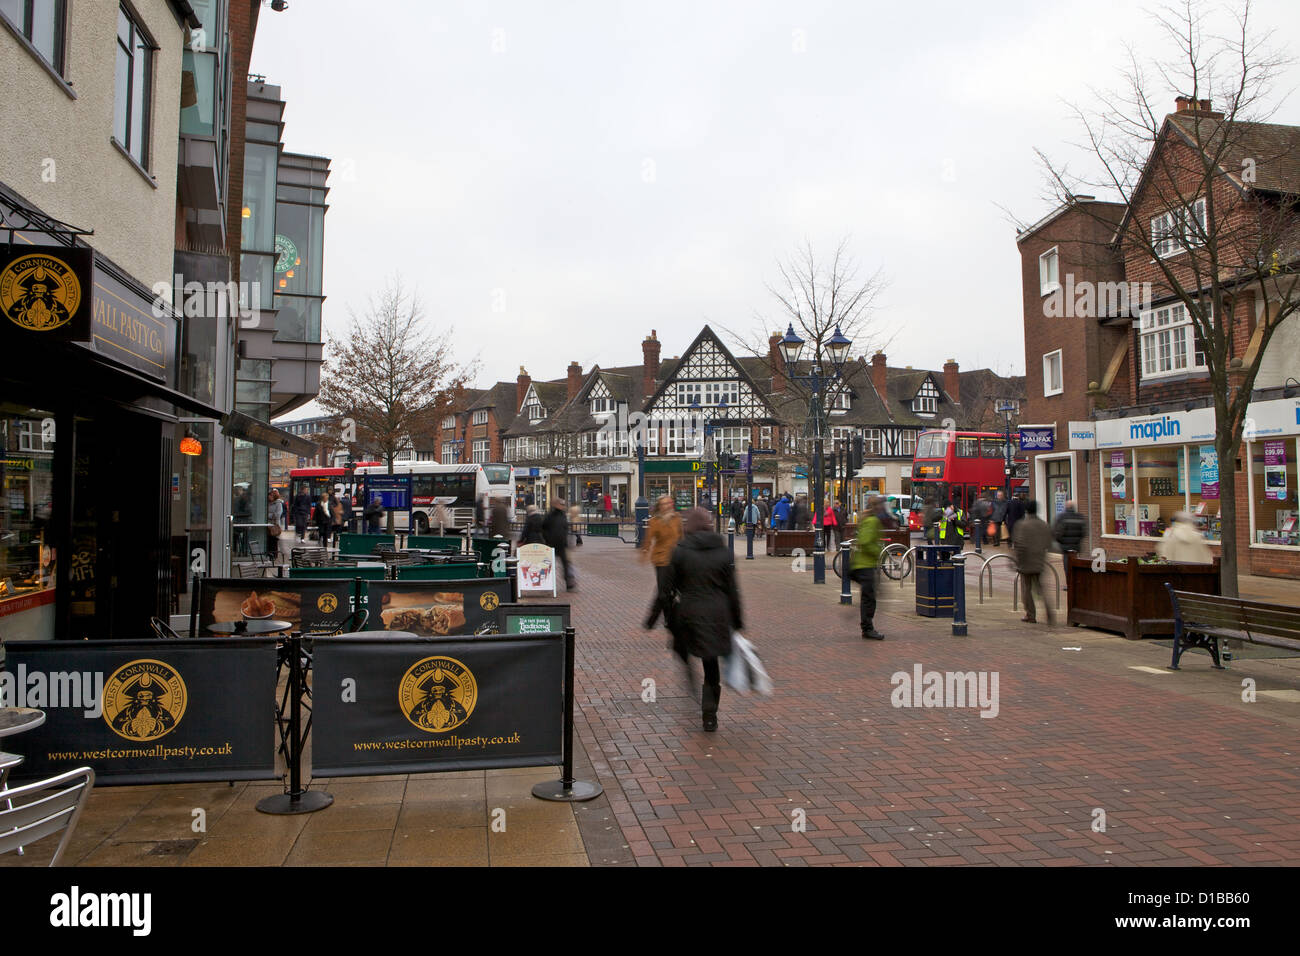 Christmas Shoppers on Solihull High Street outside Touchwood Shopping Centre. - Stock Image